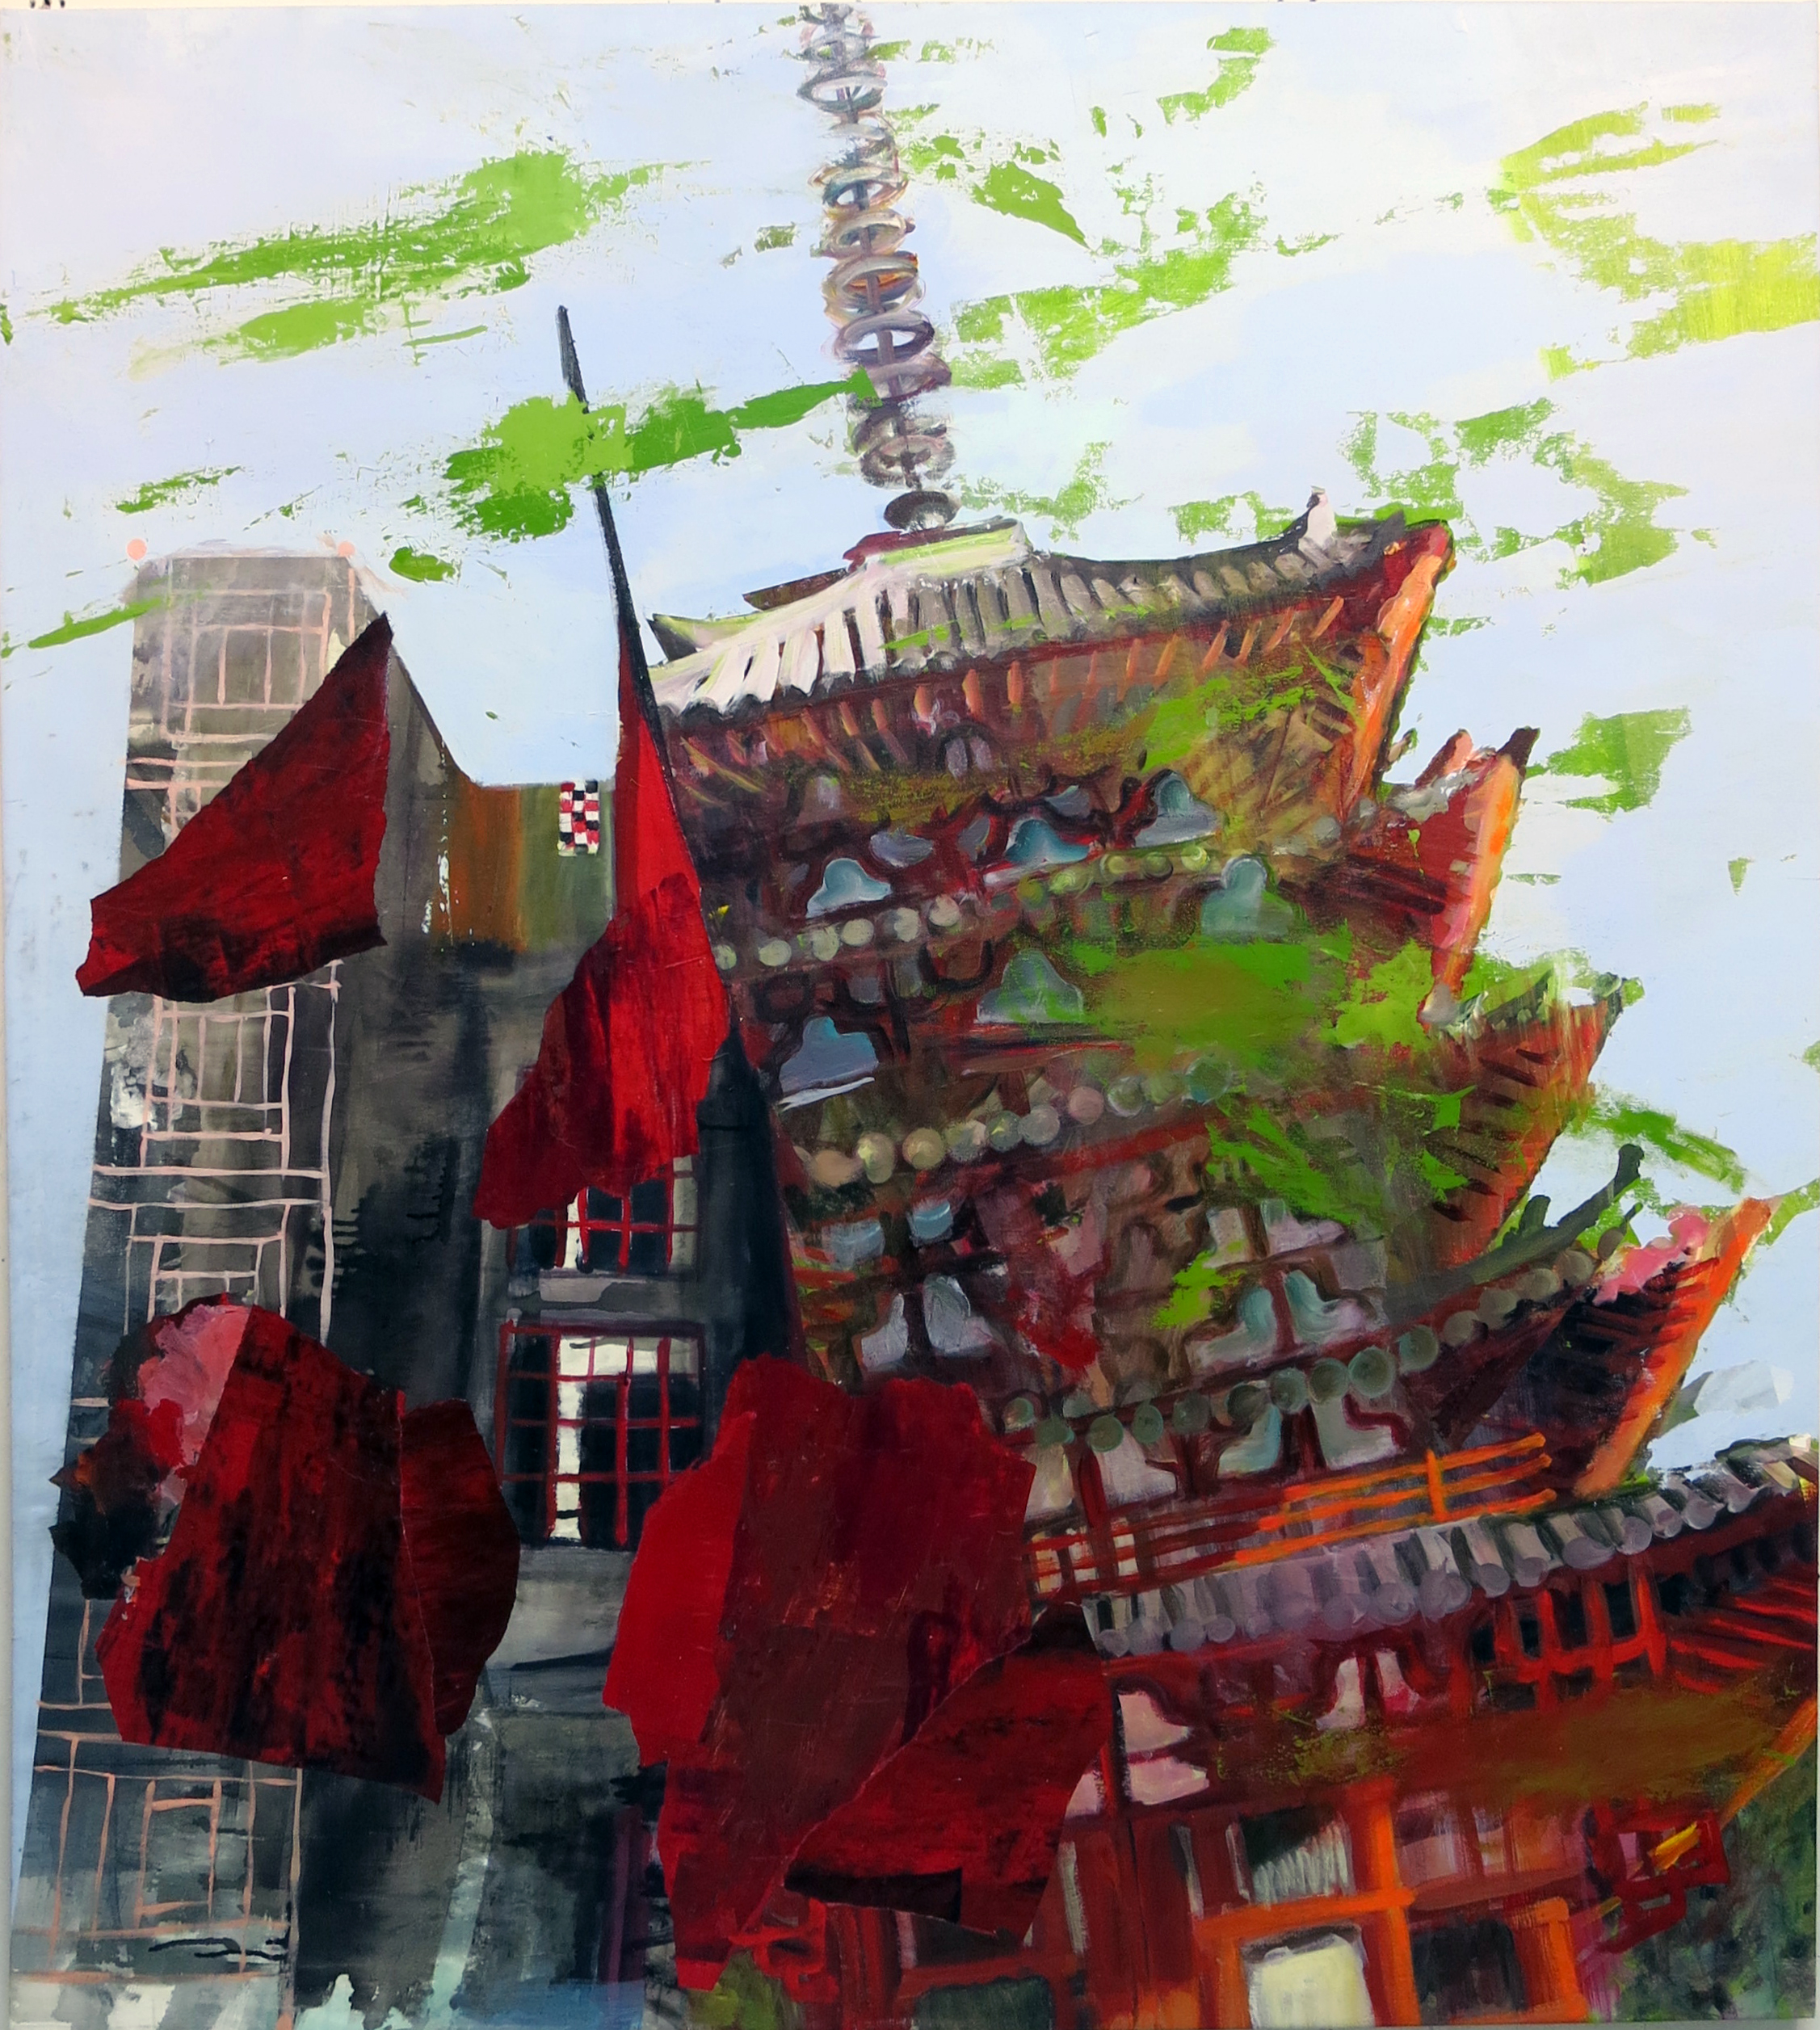 Judith Simonian, Tilting Red Tower, 2015, acrylic on canvas, 66h x 58w in.